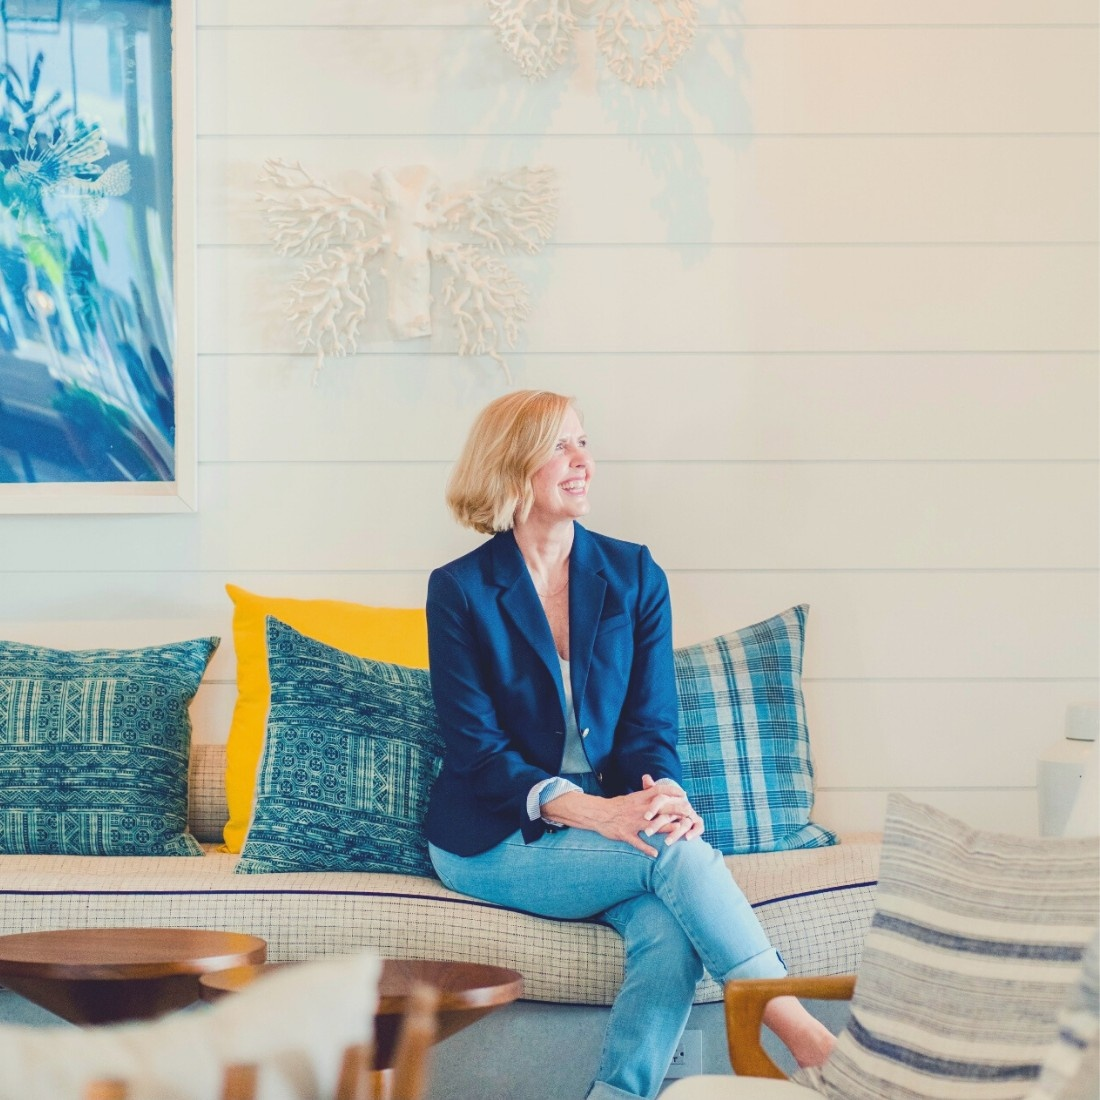 blonde woman sitting on couch with navy blazer and hands folded on her legs